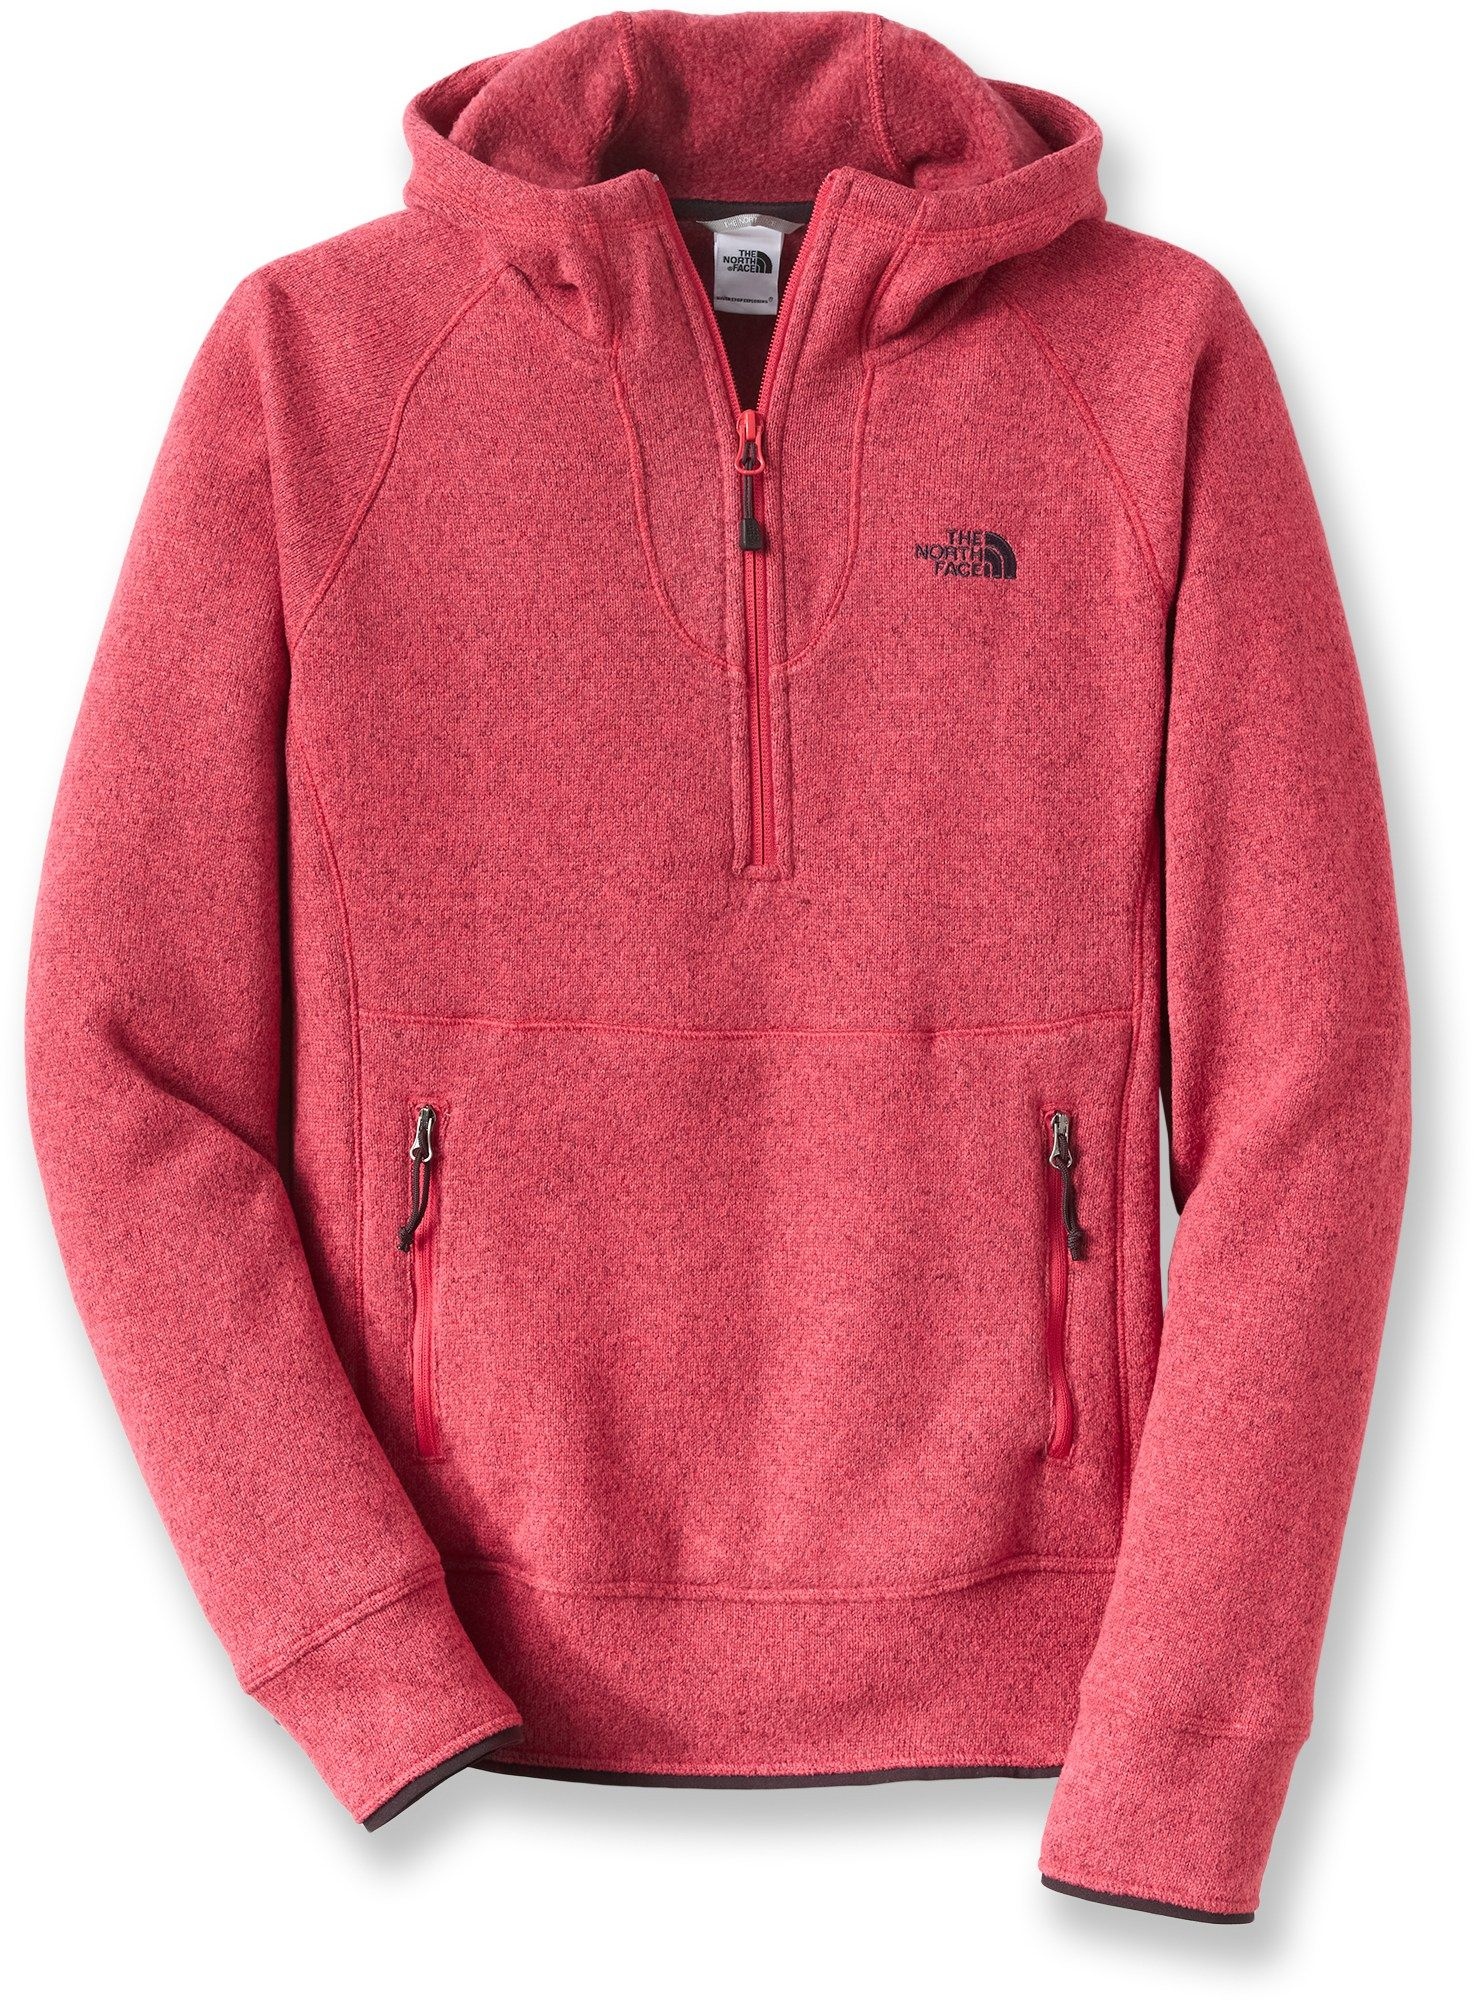 Free Shipping at Crescent North Women's The Face Hoodie Sunshine HYED2IW9